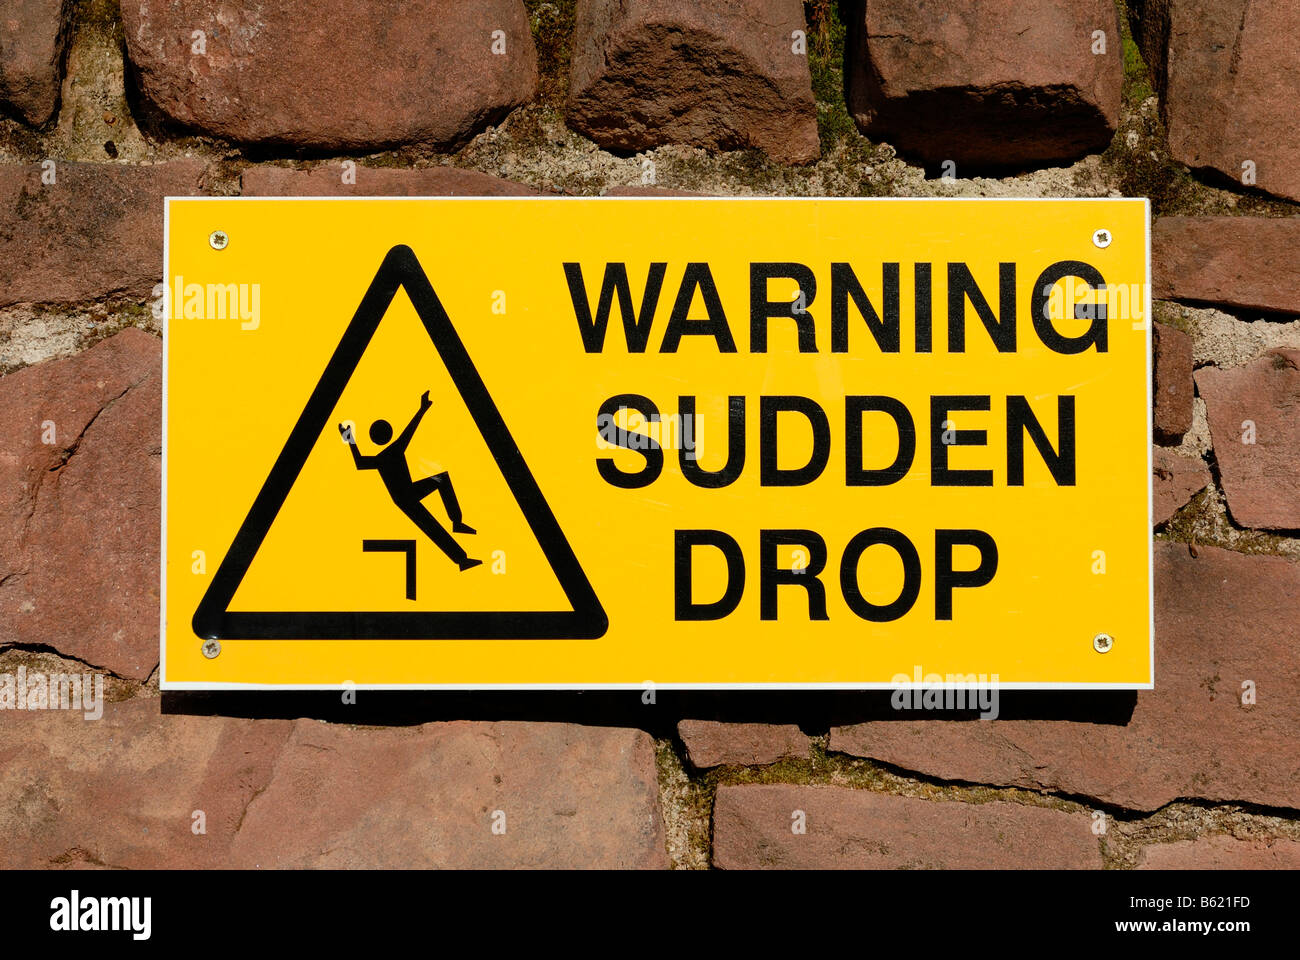 Warning sign for sudden drop, Great Britain, Europe Stock Photo